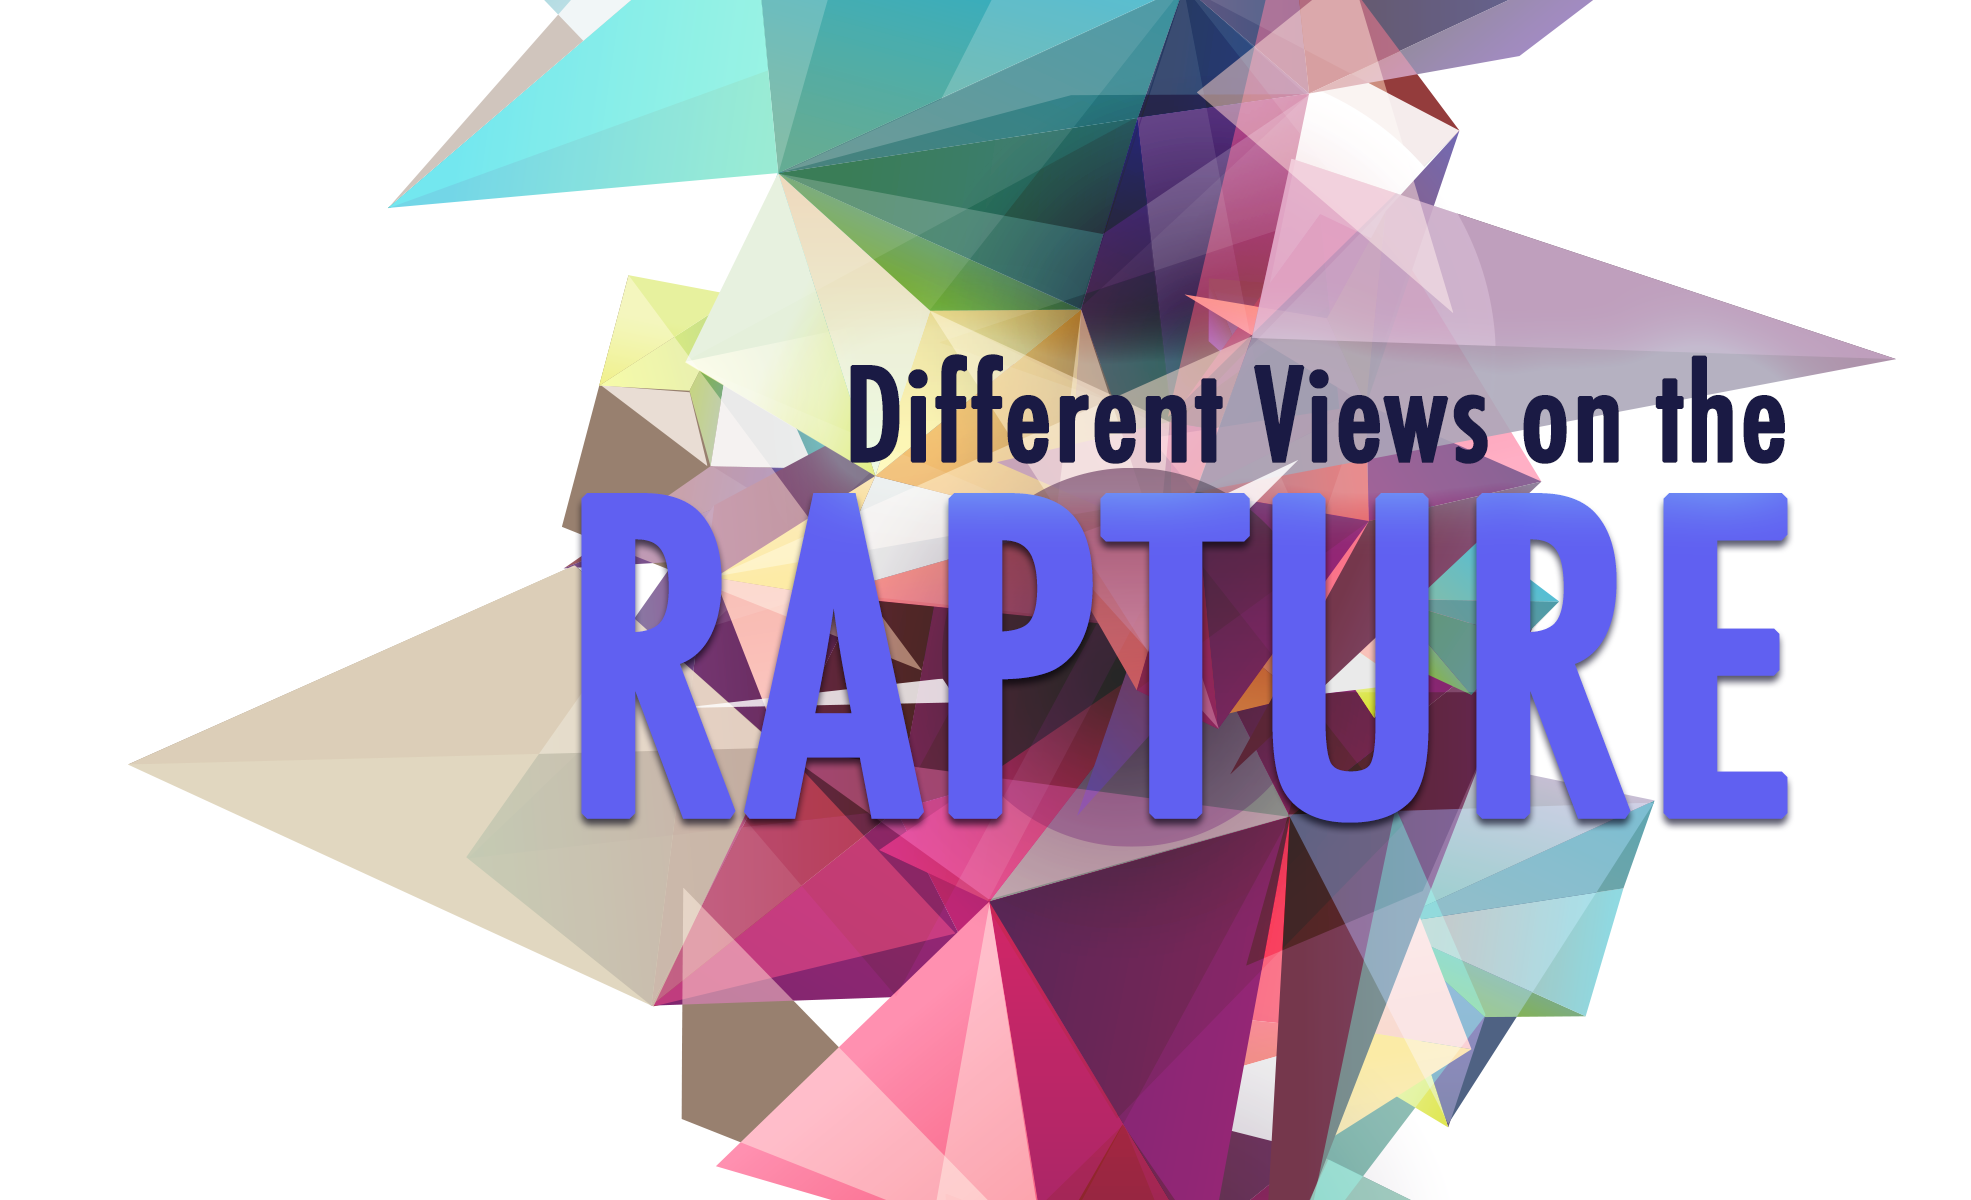 What are the different views about when the Rapture takes place?